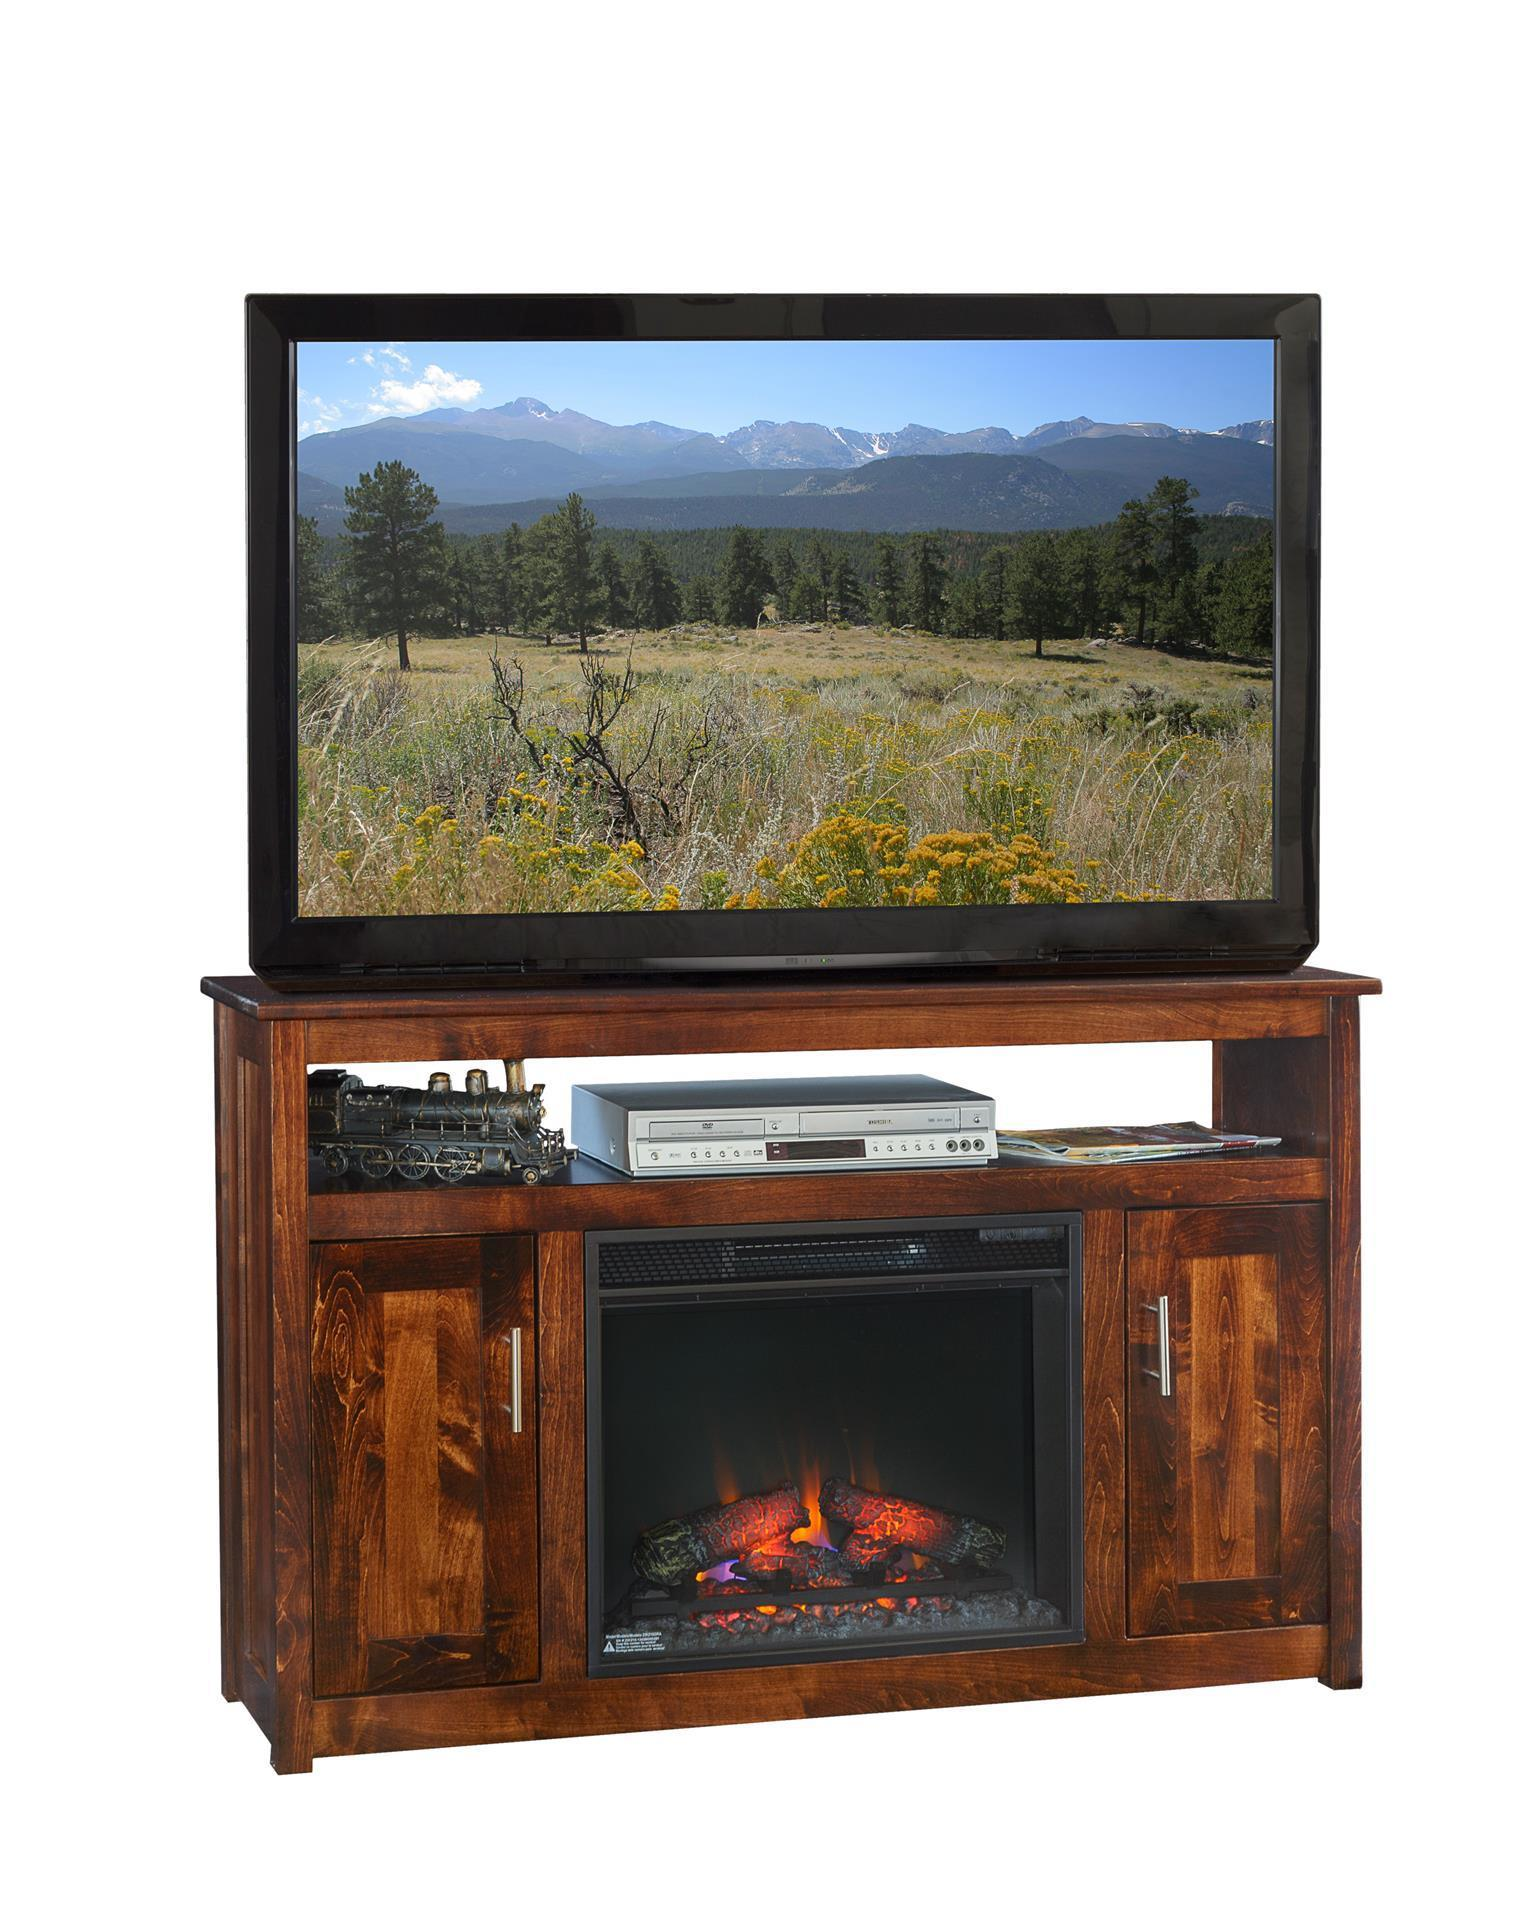 Finsbury Park 51 Fireplace Tv Stand From Dutchcrafters Amish